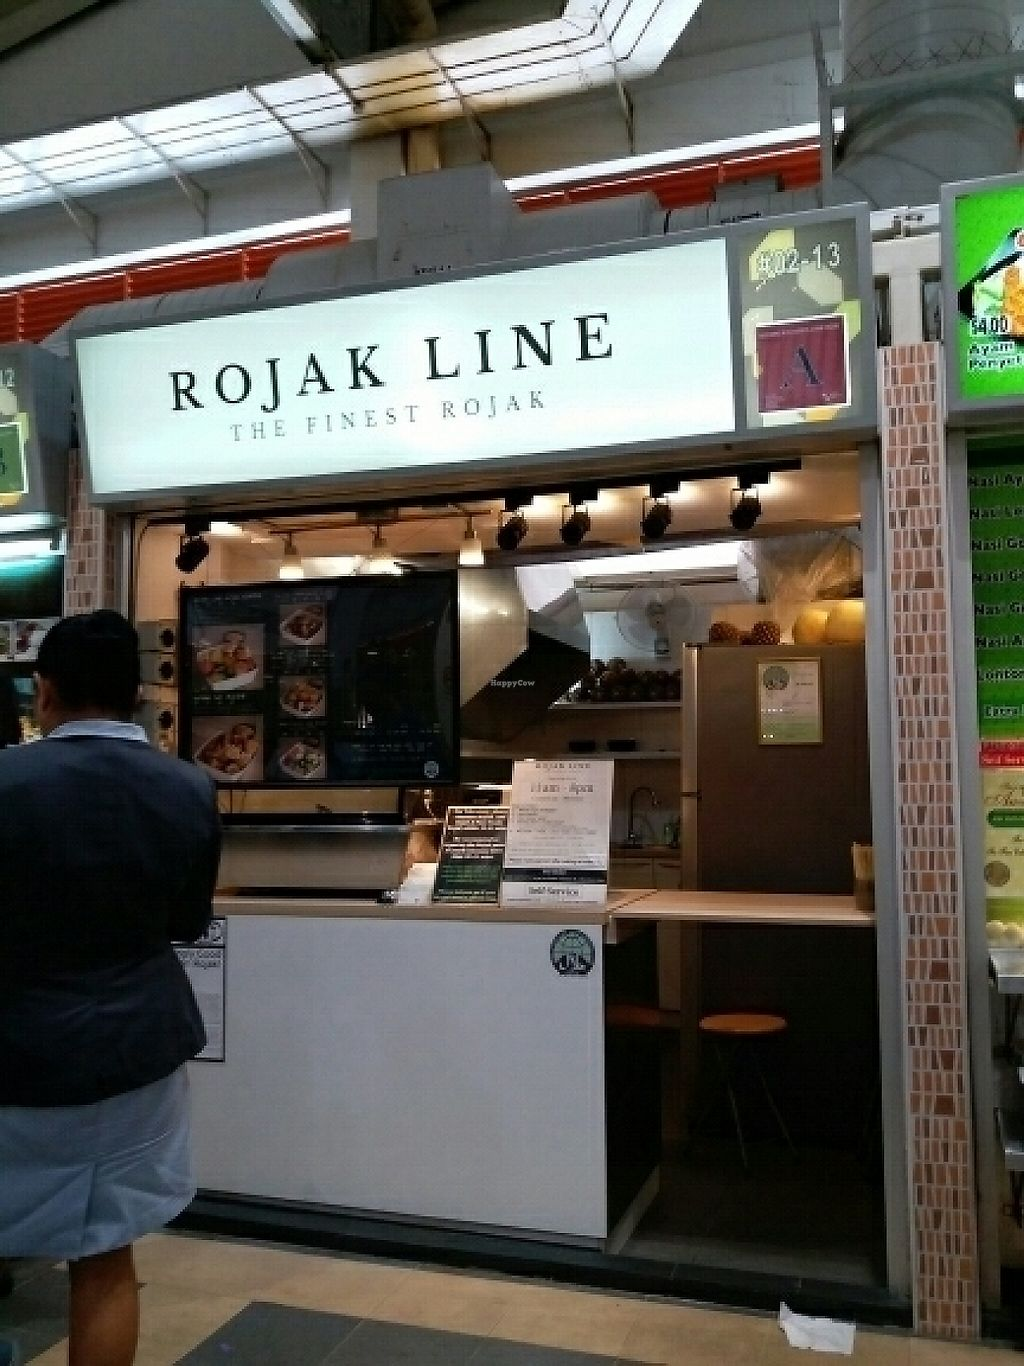 """Photo of ROJAK LINE - The Finest Rojak  by <a href=""""/members/profile/ouikouik"""">ouikouik</a> <br/>rojak line <br/> May 8, 2017  - <a href='/contact/abuse/image/72696/257114'>Report</a>"""